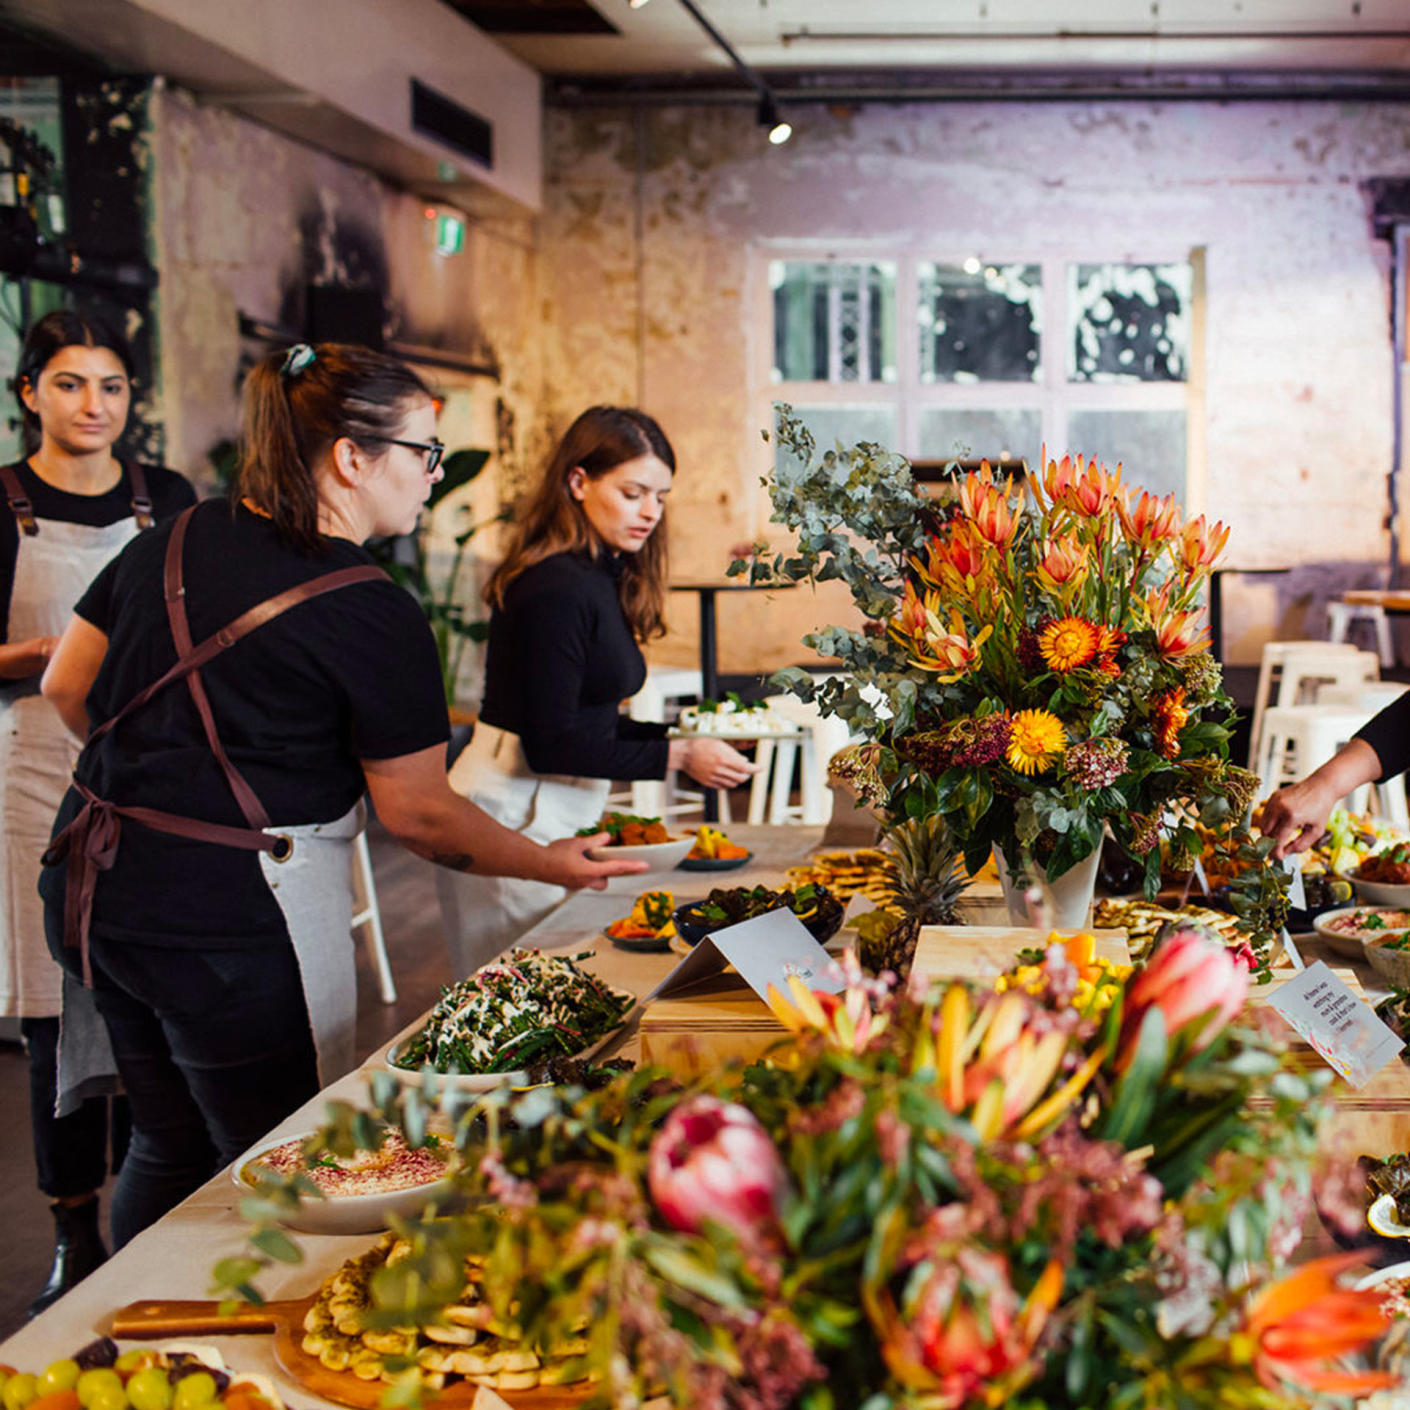 Three people setting up an assortment of food and flowers on a long dining table